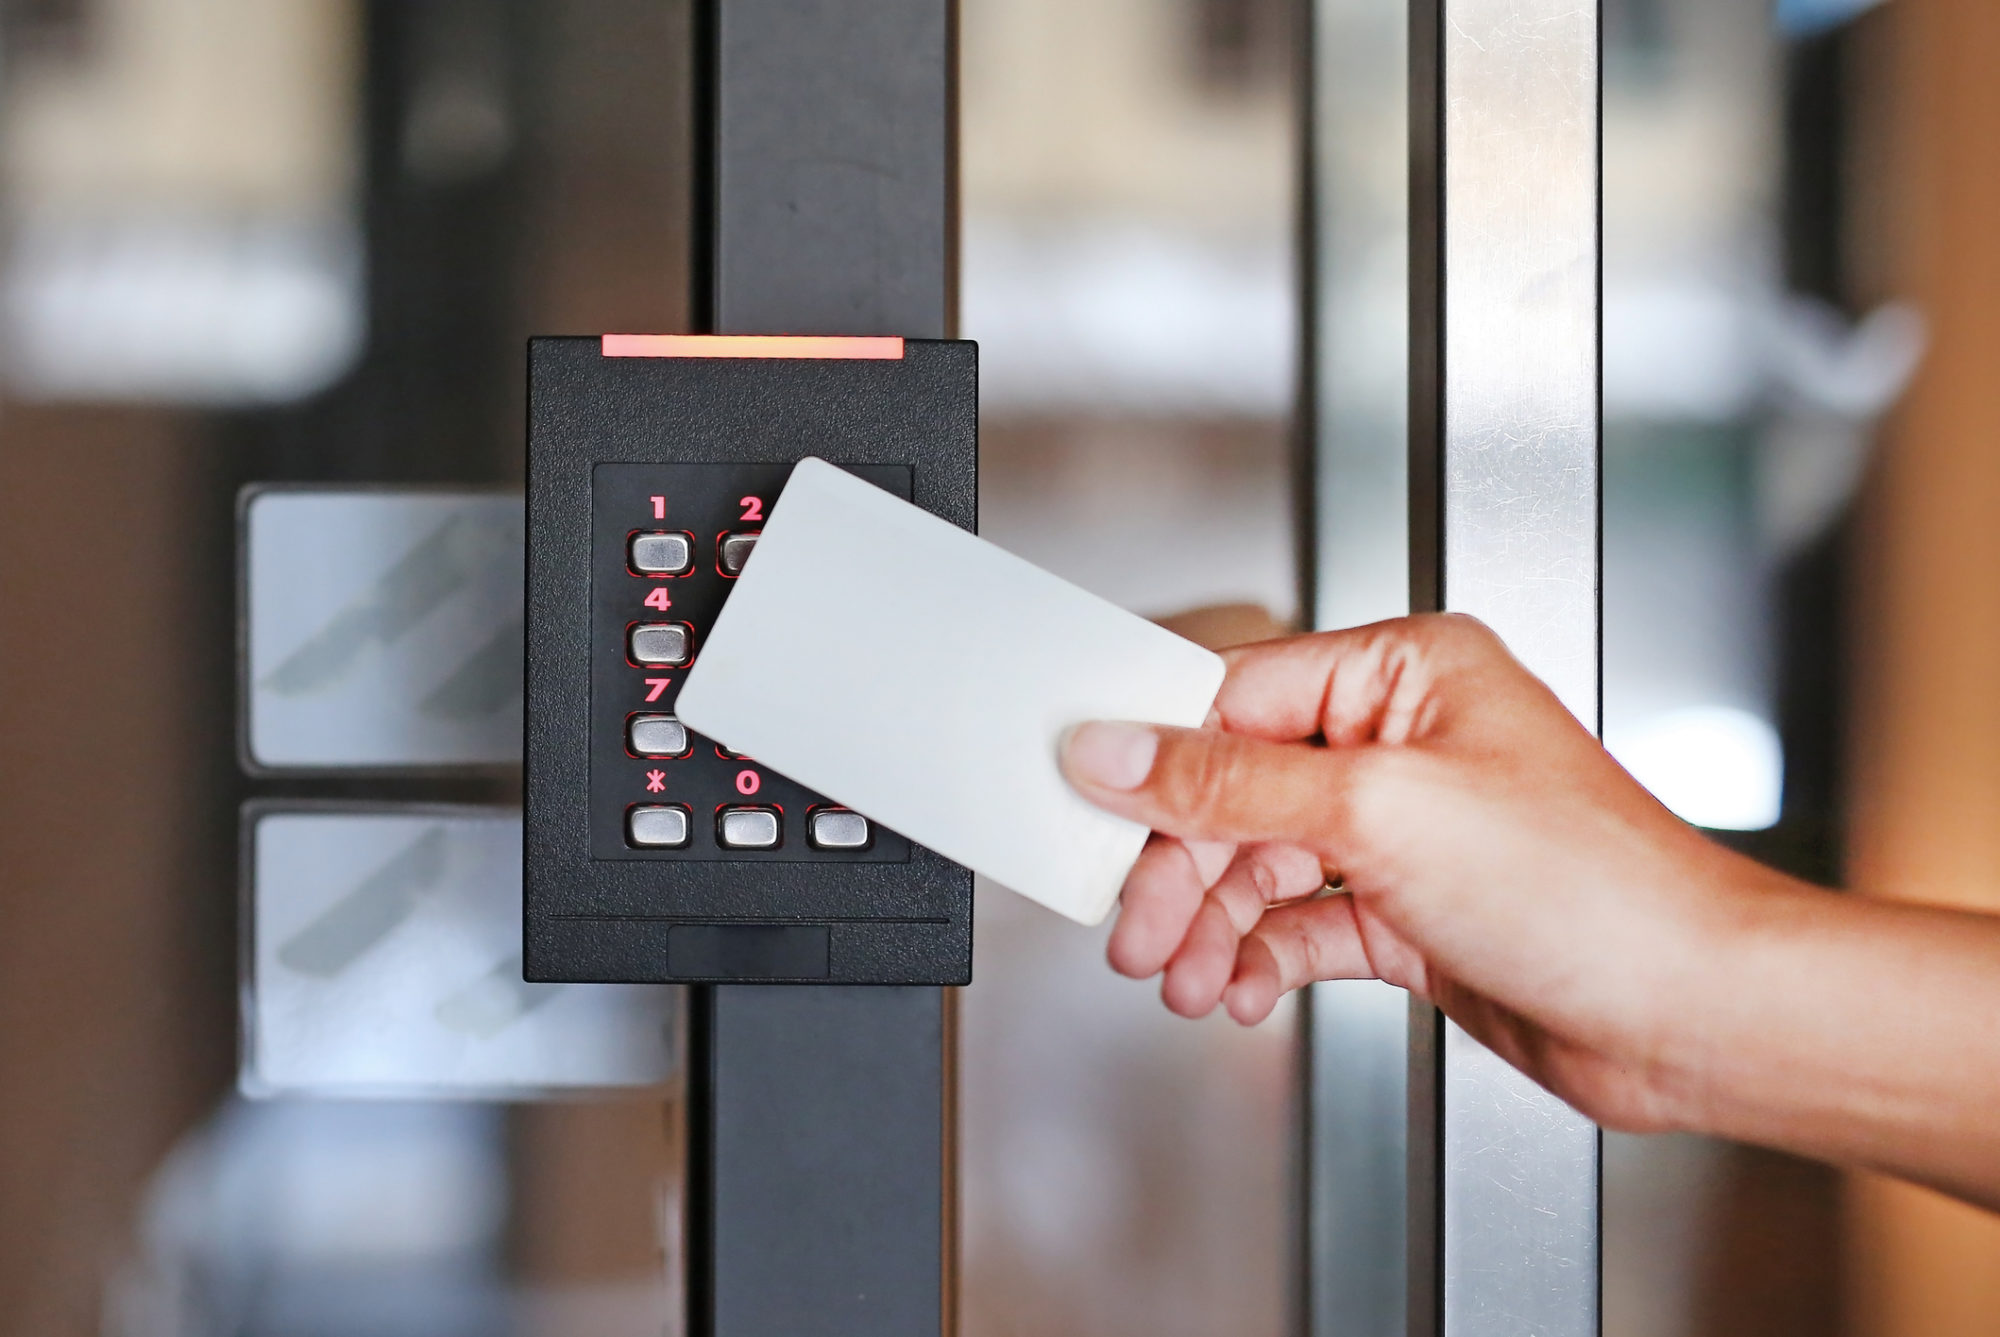 Door access control, young woman holding a key card to lock and unlock door, access control system, access control system installation, alarm system